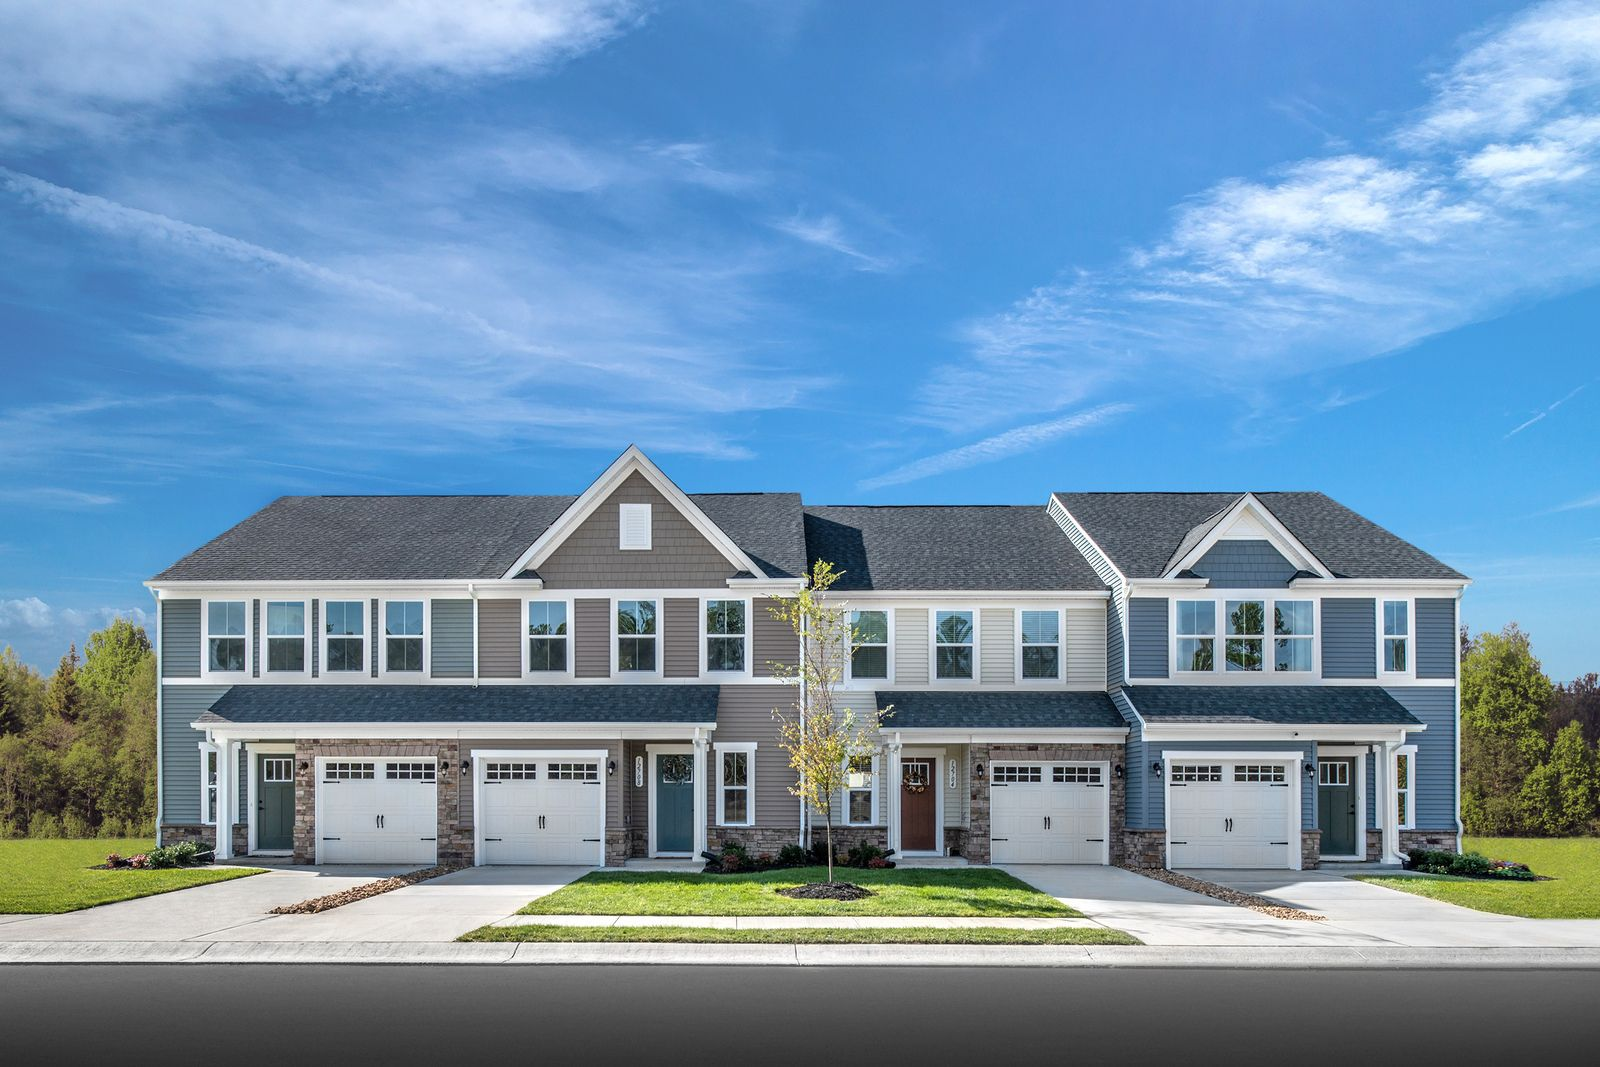 Parkview Preserve - New Townhomes Near Downtown Nashville:Enjoy alow maintenance lifestyle with rare1stfloor owner's suite options& 1- and 2-car garages.Schedulea virtual or in-person visit to tour our decorated models today!